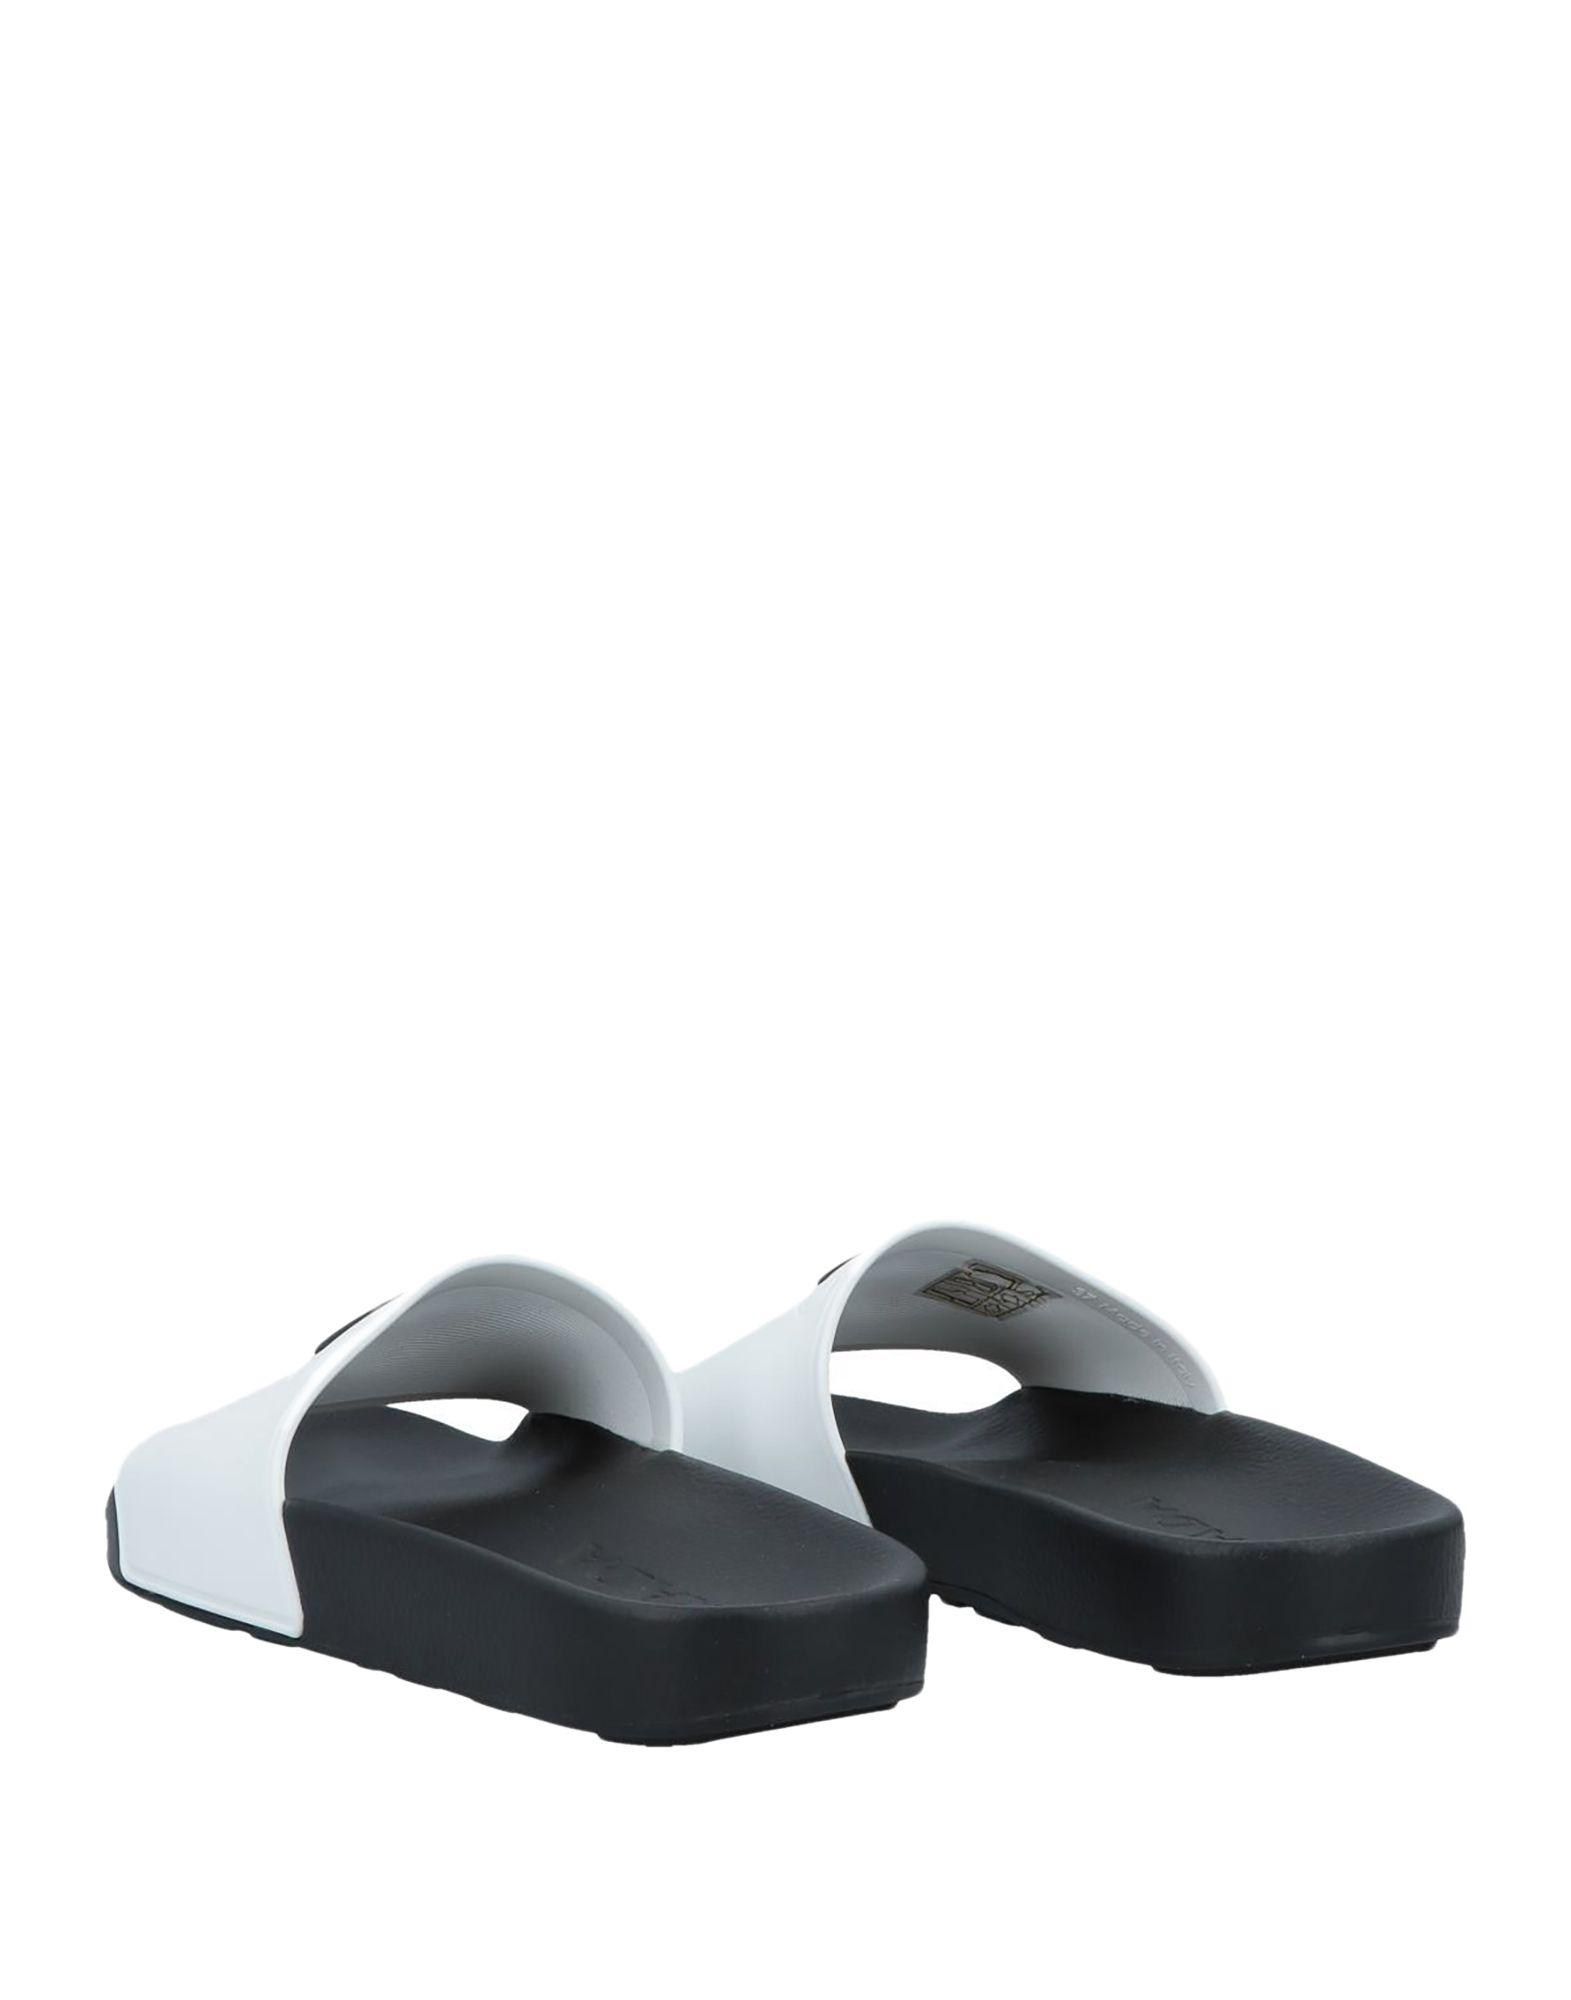 Lyst - Prada Logo Slides in White - Save 60% 5f60af3bee6